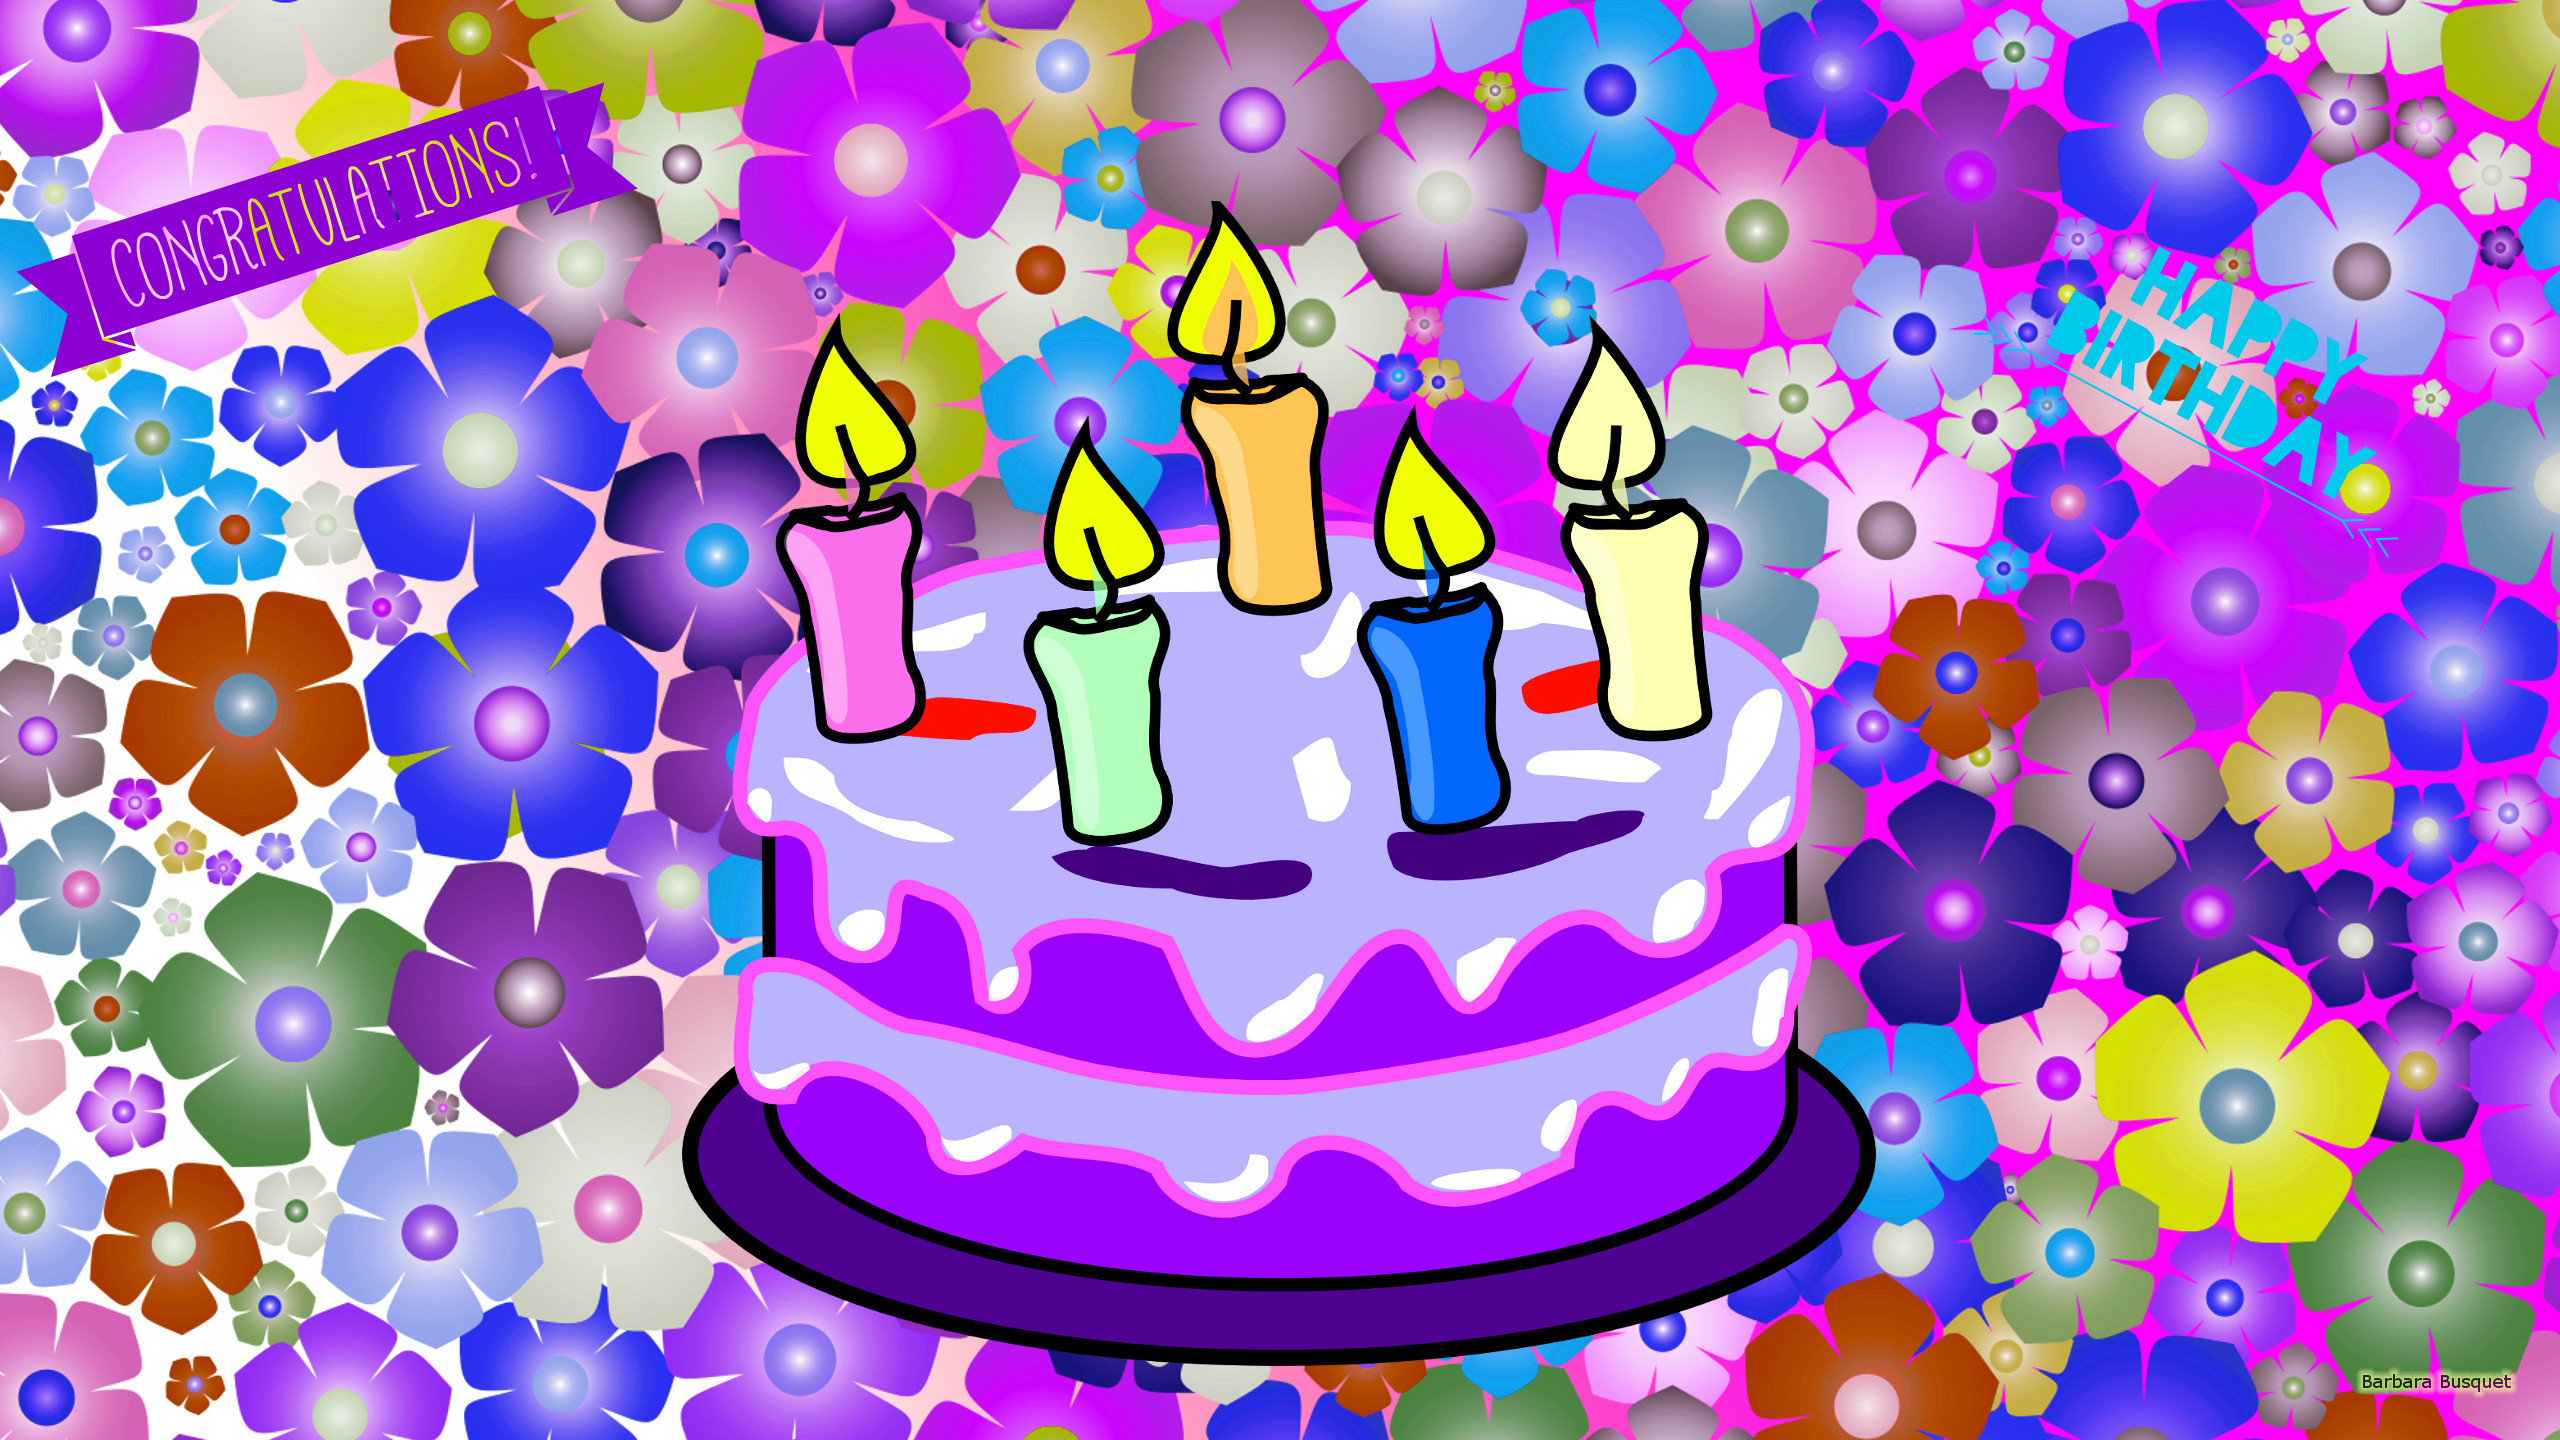 Happy birthday barbaras hd wallpapers purple birthday wallpaper with flowers and a cake with burning candles dhlflorist Gallery